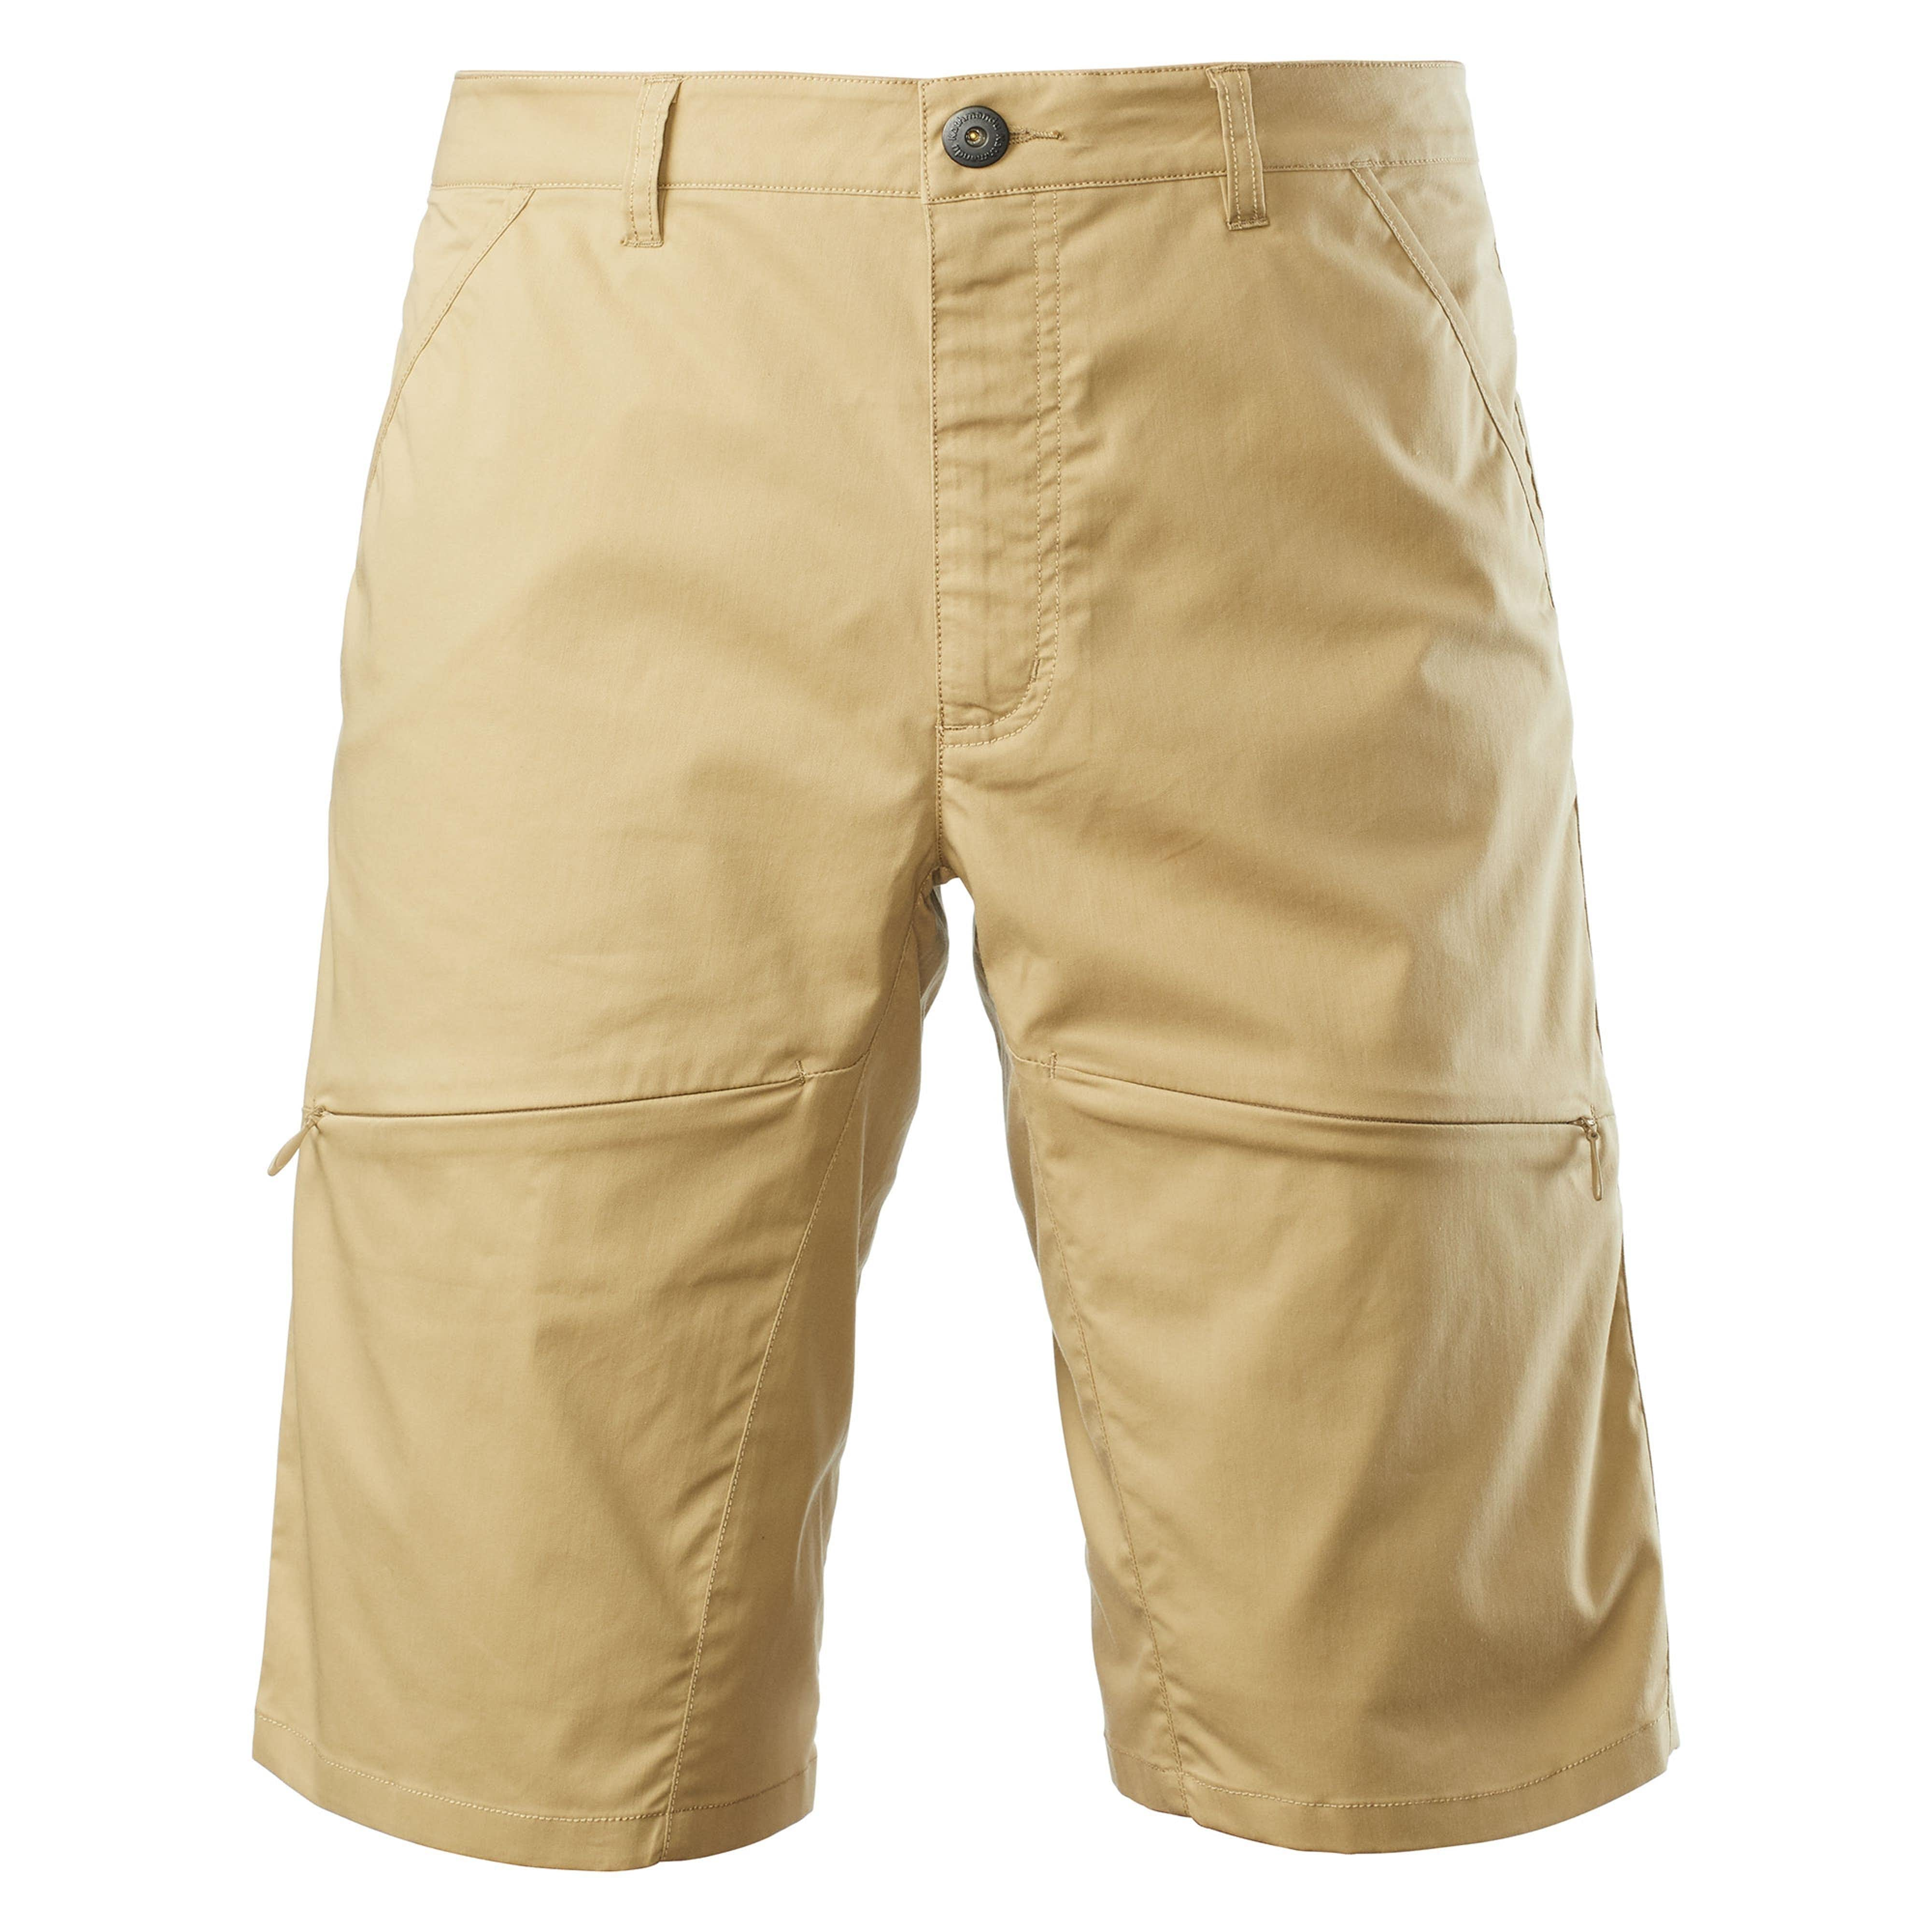 5b4767863d Men's Pants & Shorts | Travel, Hiking & Outdoor Pants | AU